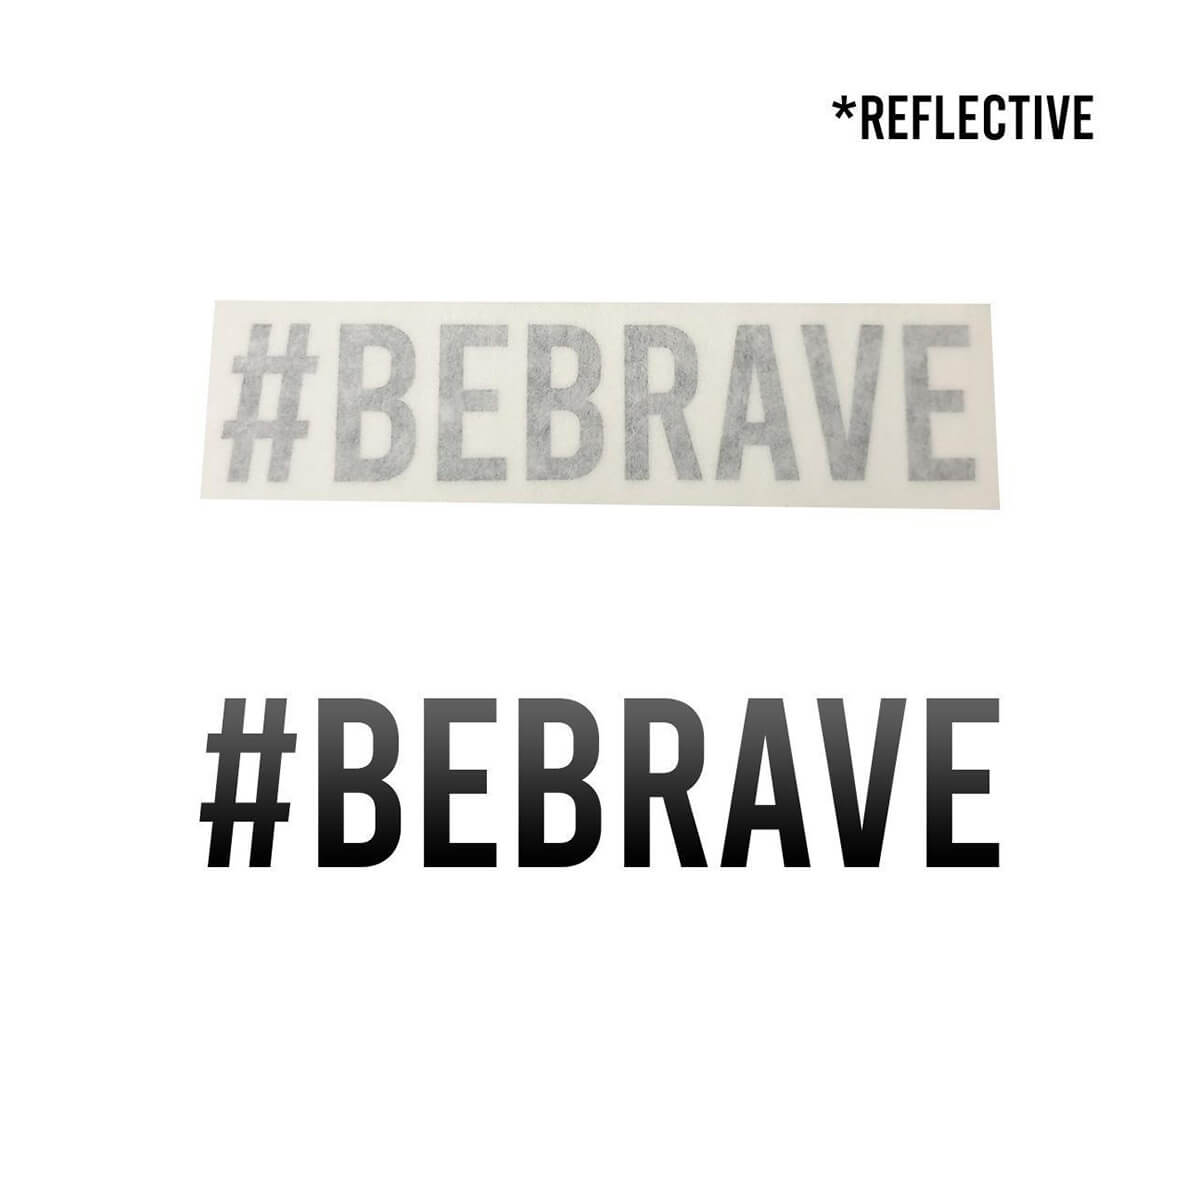 #BEBRAVE Waterproof Die-Cut Decal - Flying Solo Gear Company